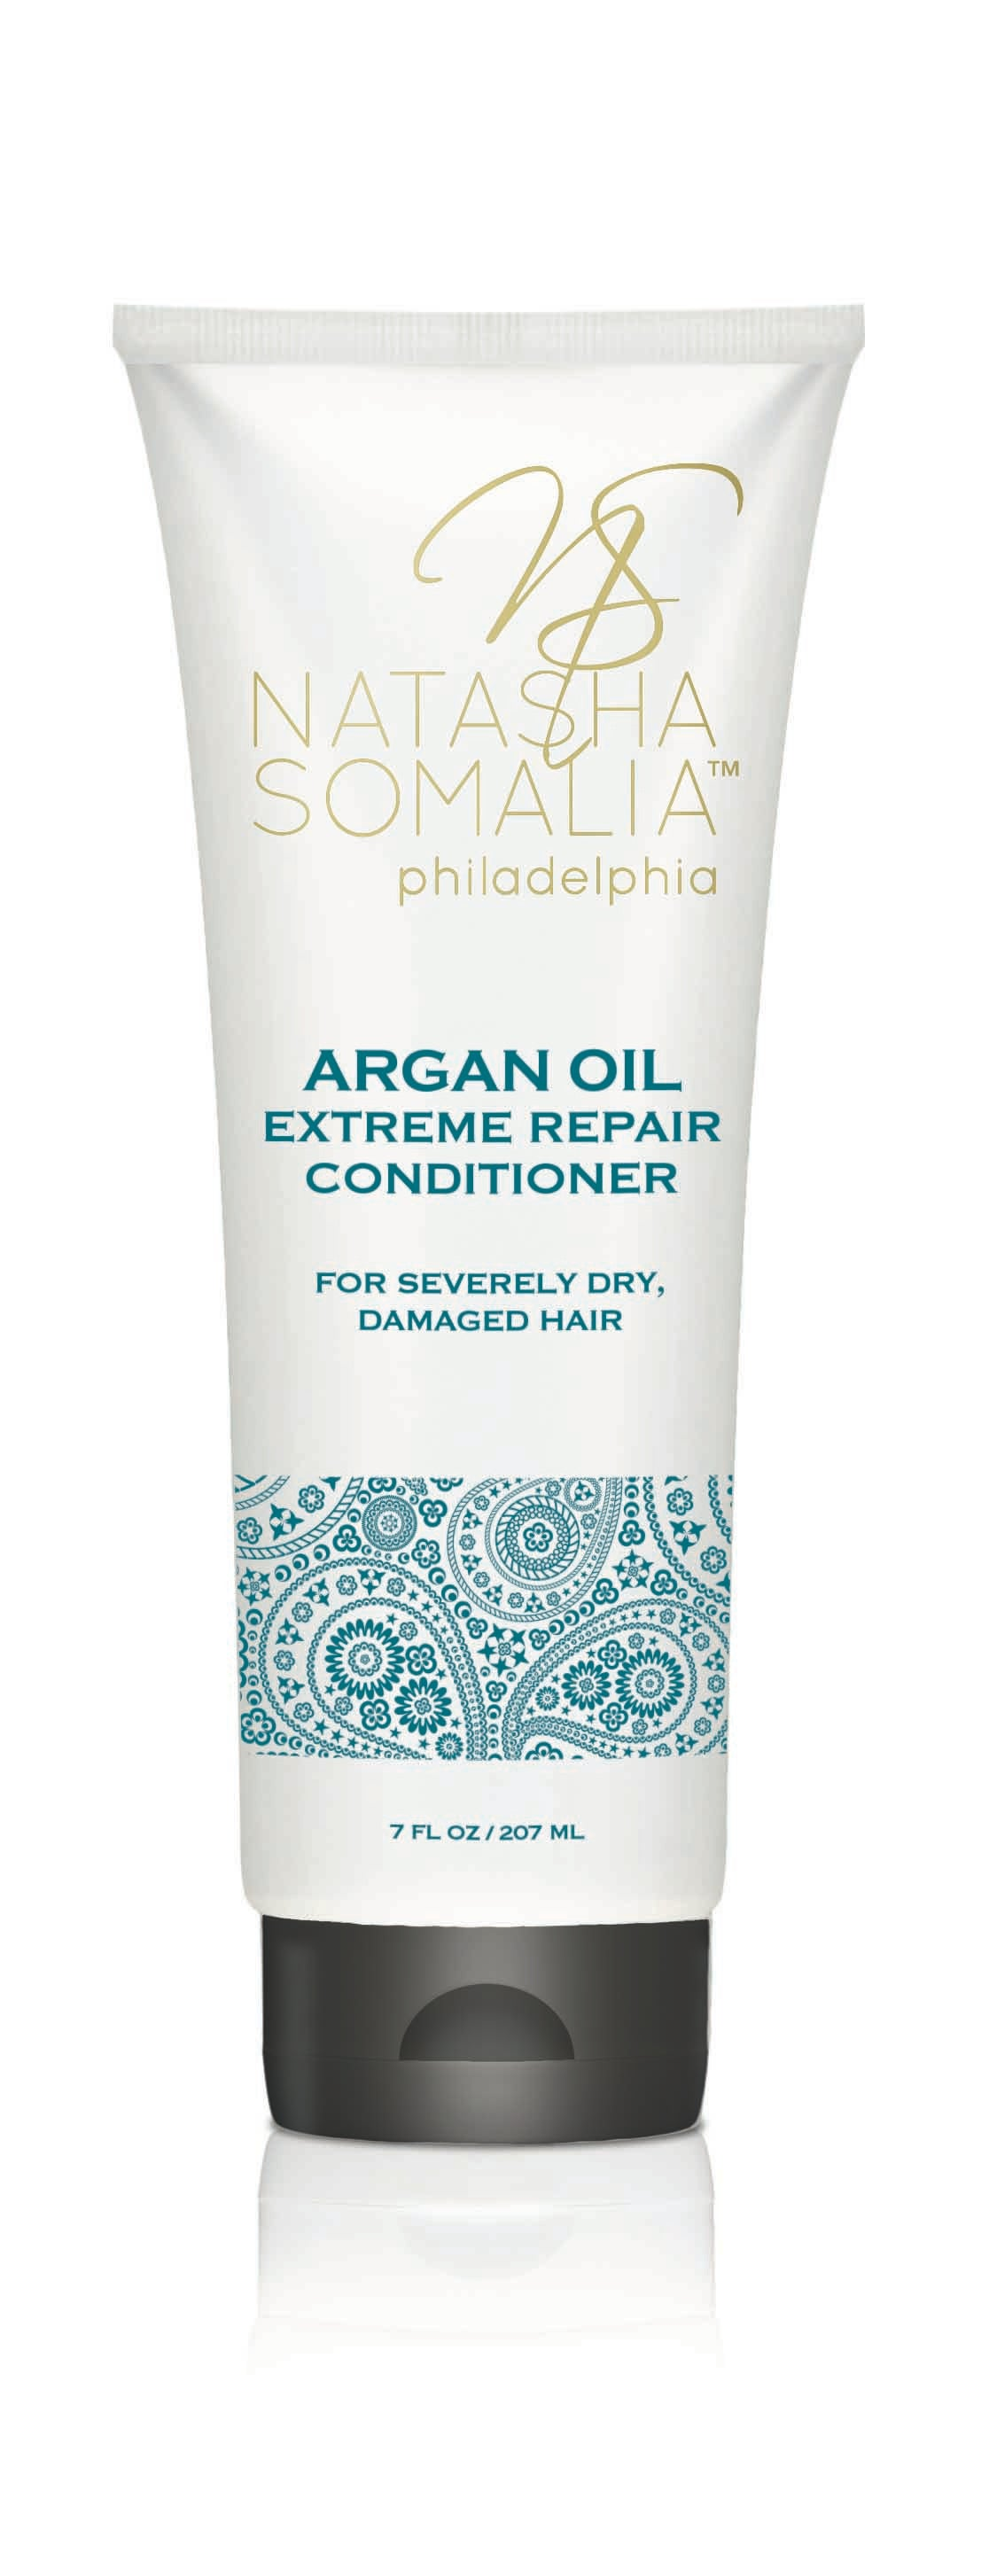 Argan Oil Extreme Repair Conditioner 8oz